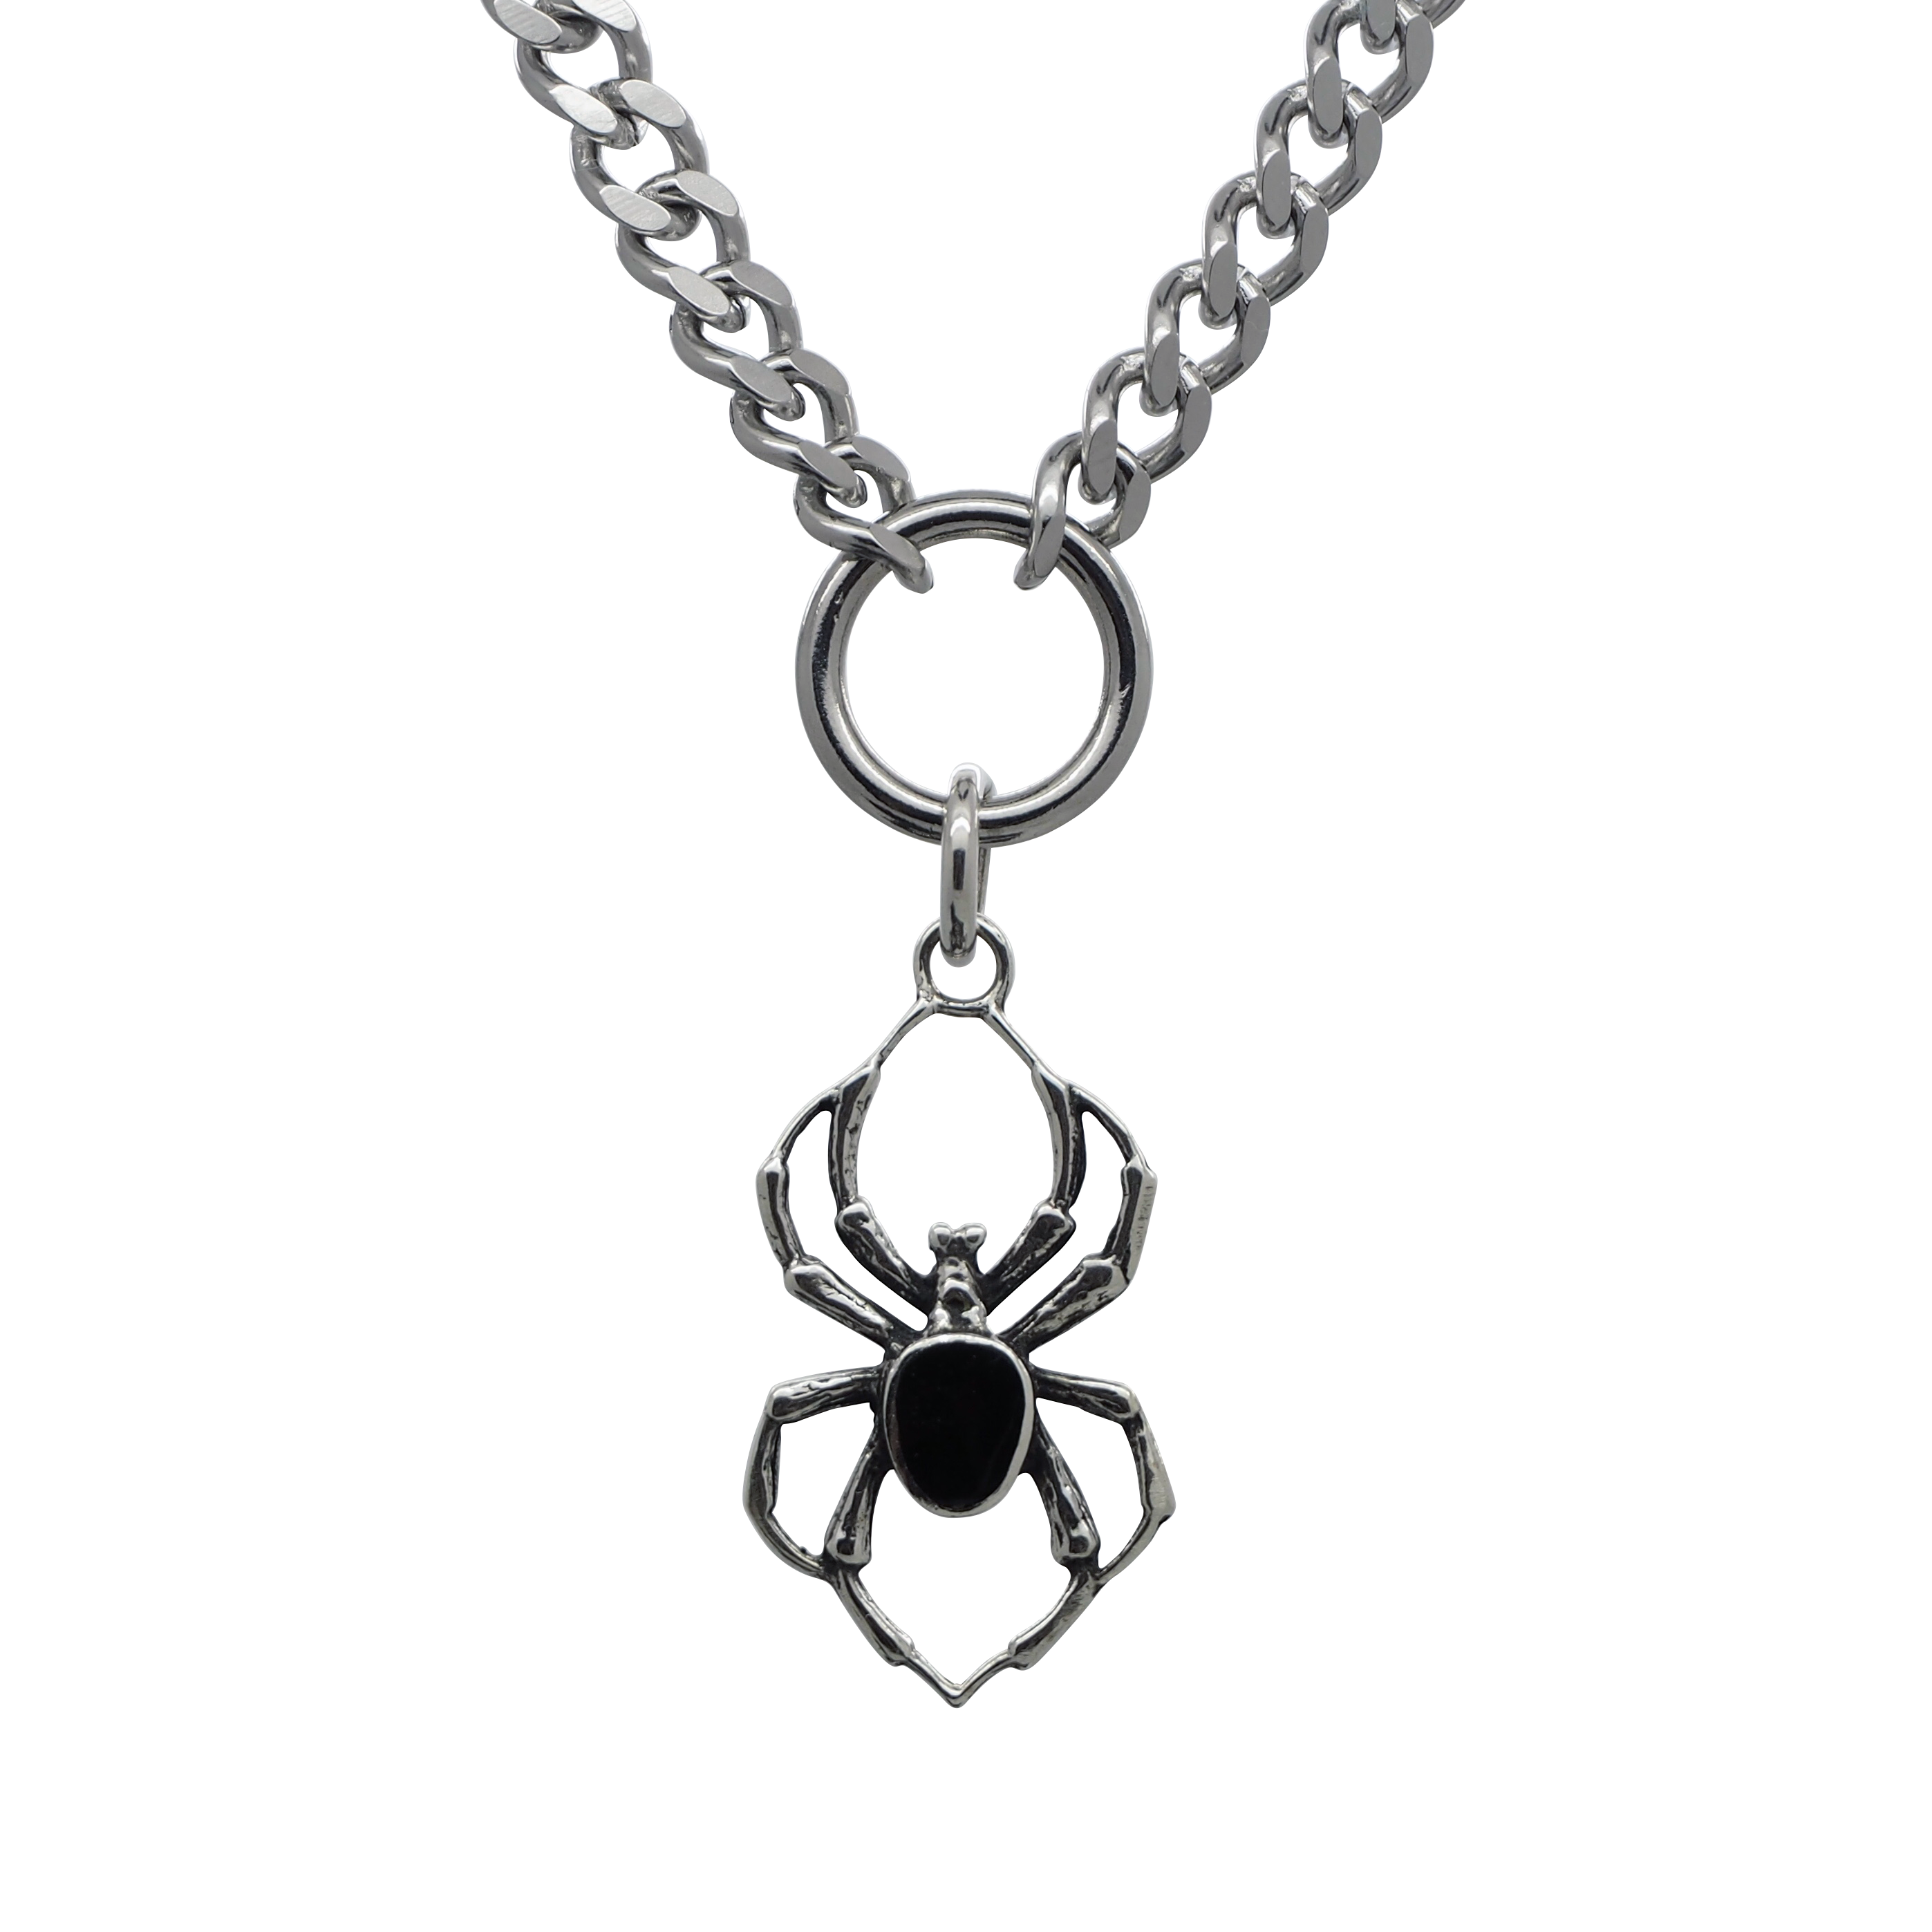 Black Widow Chain Necklace